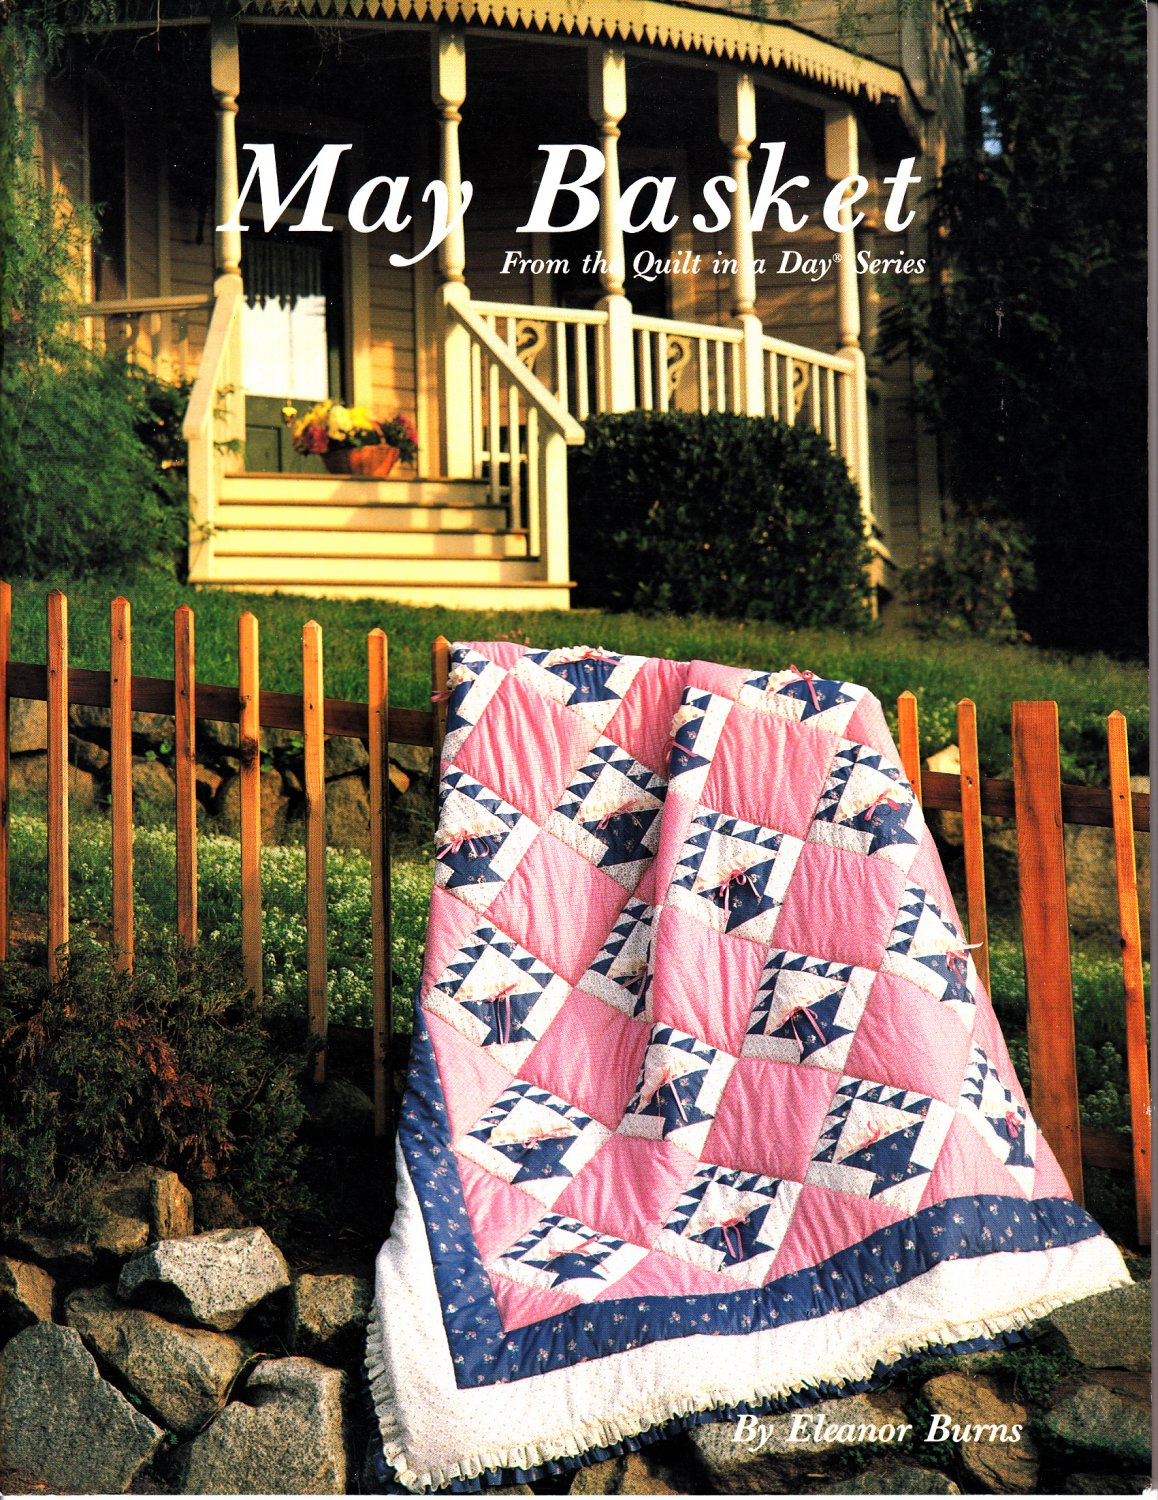 May Basket by Eleanor Burns (Quilt in a Day series, 1988)